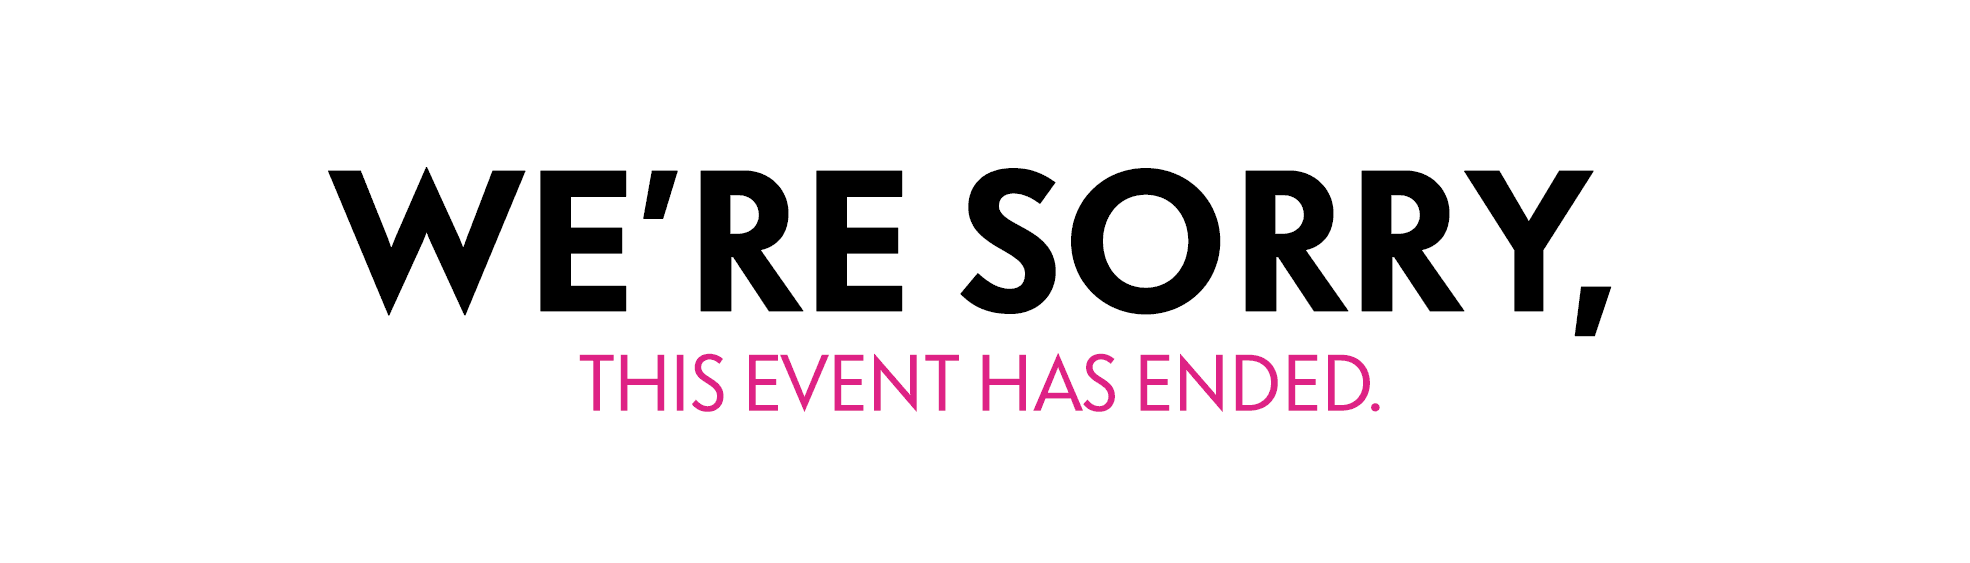 Gift Card Event has Ended